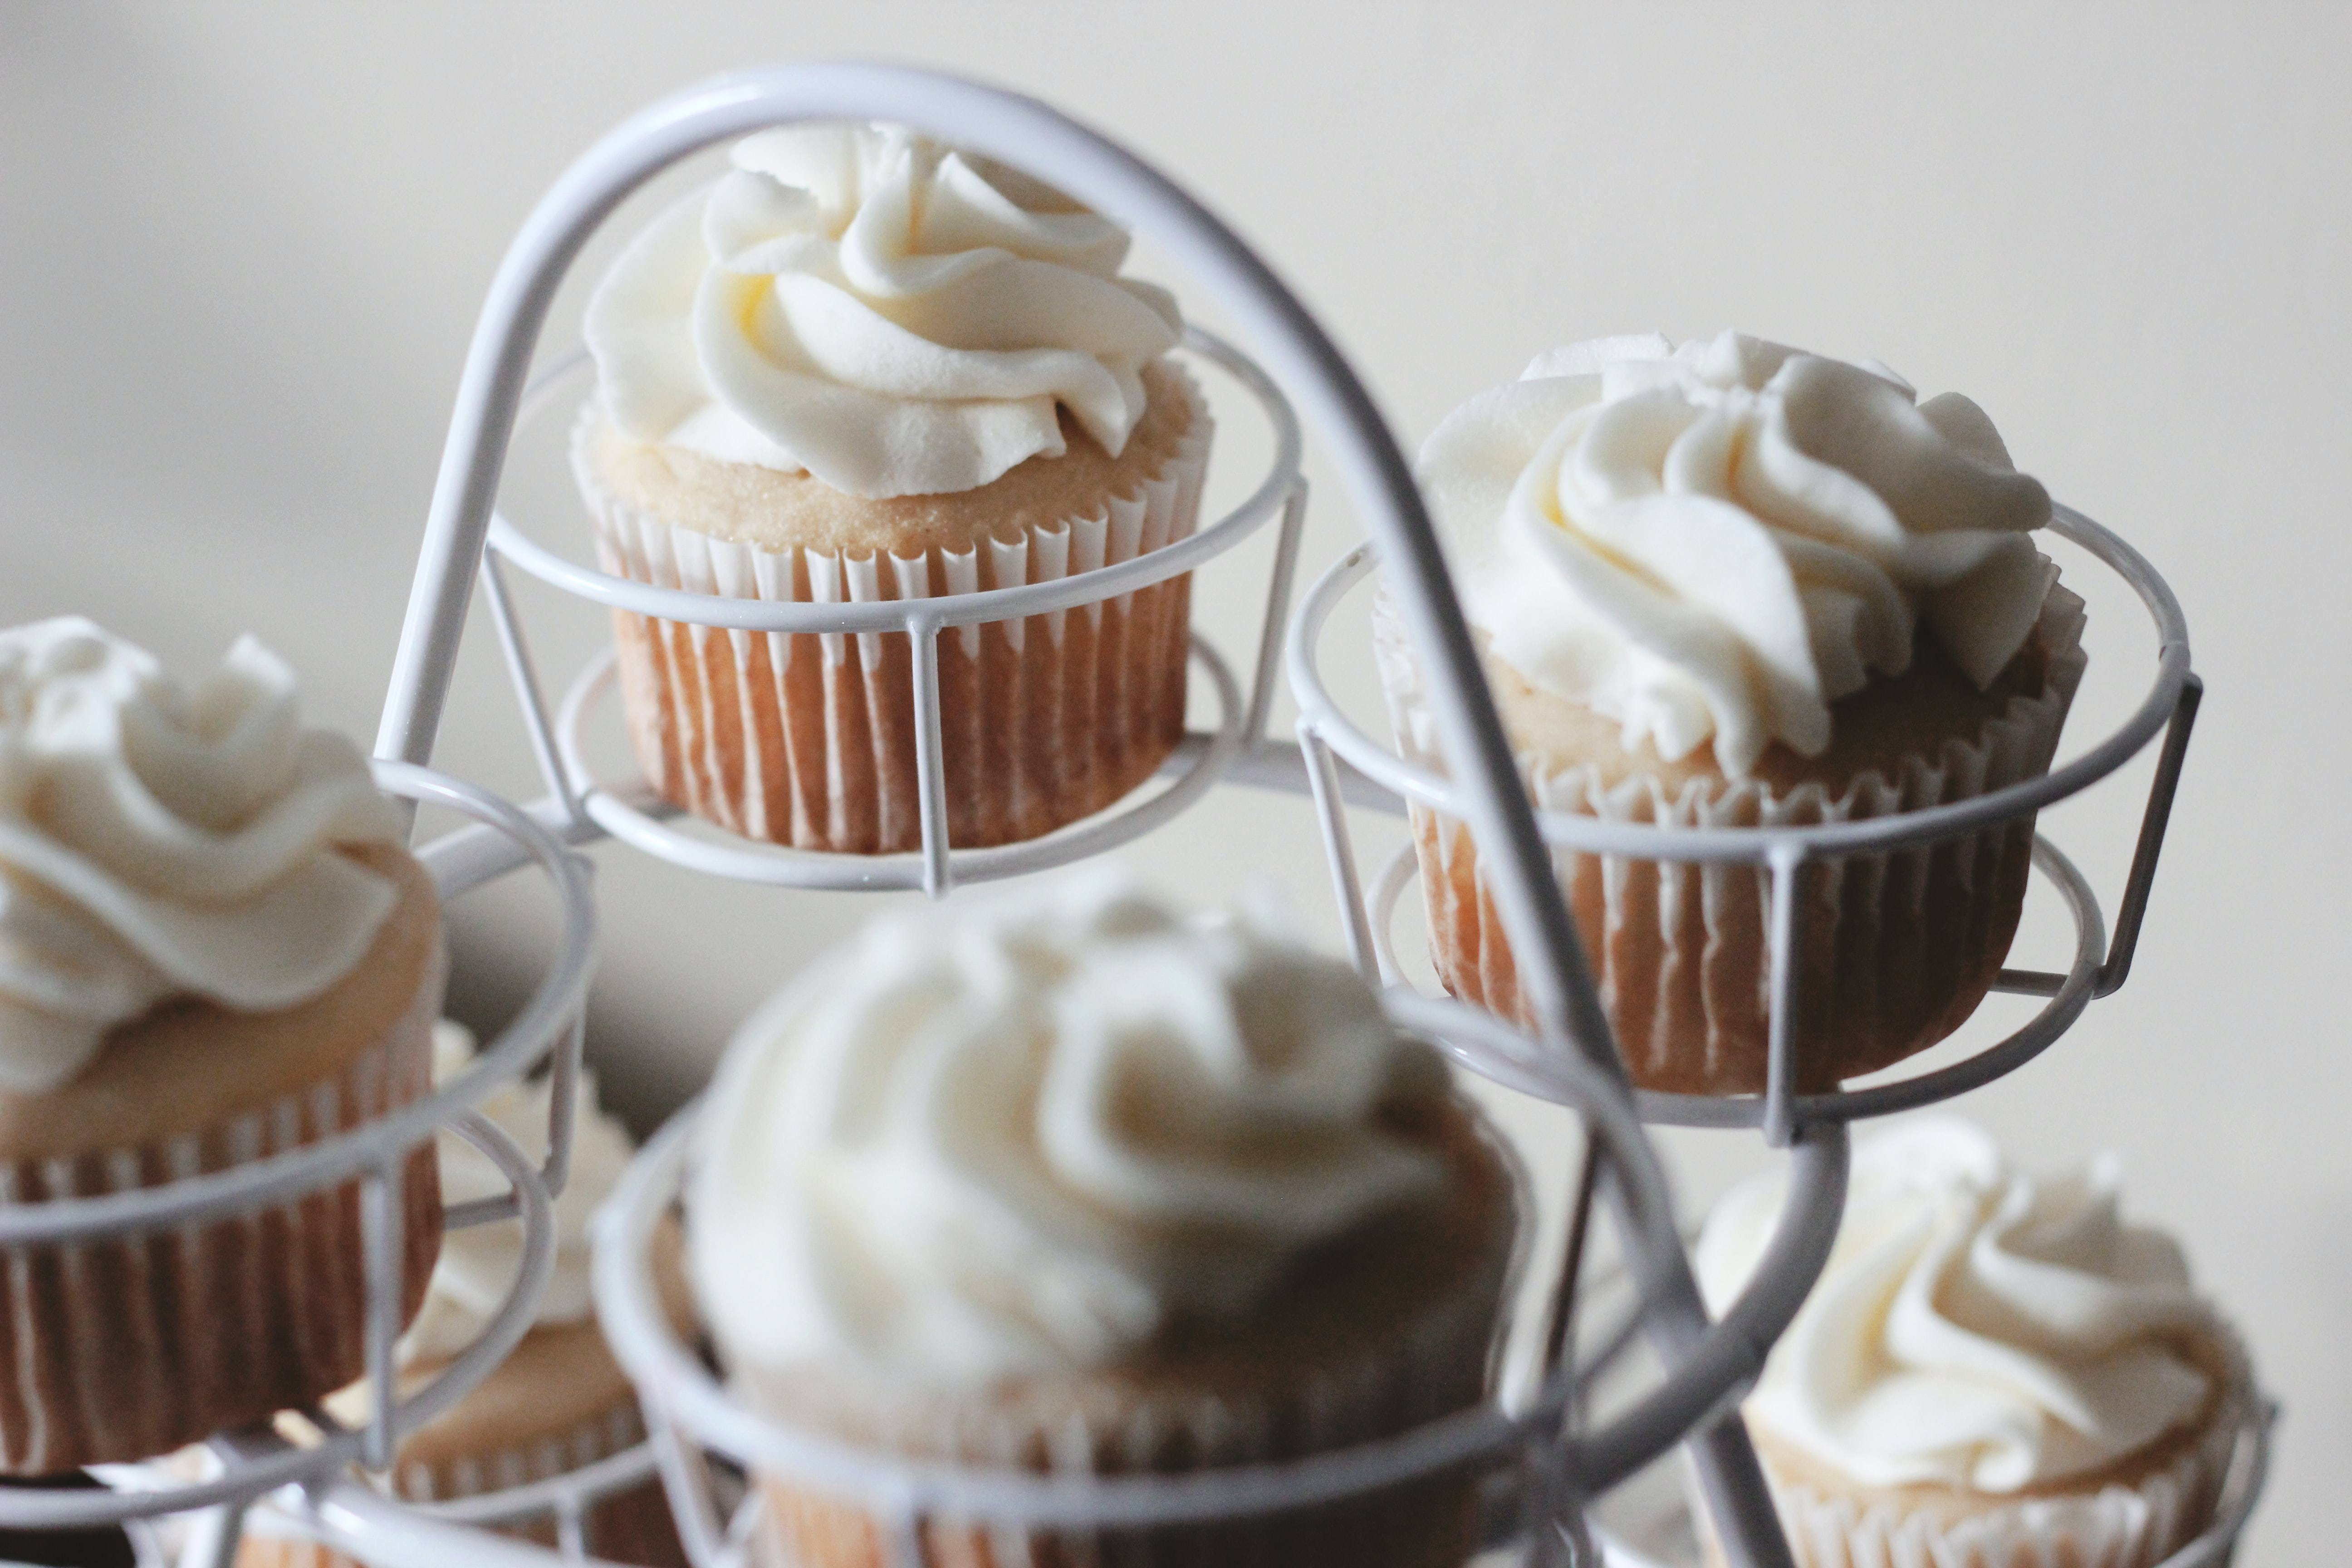 photo of baked cupcakes on white cupcake tray